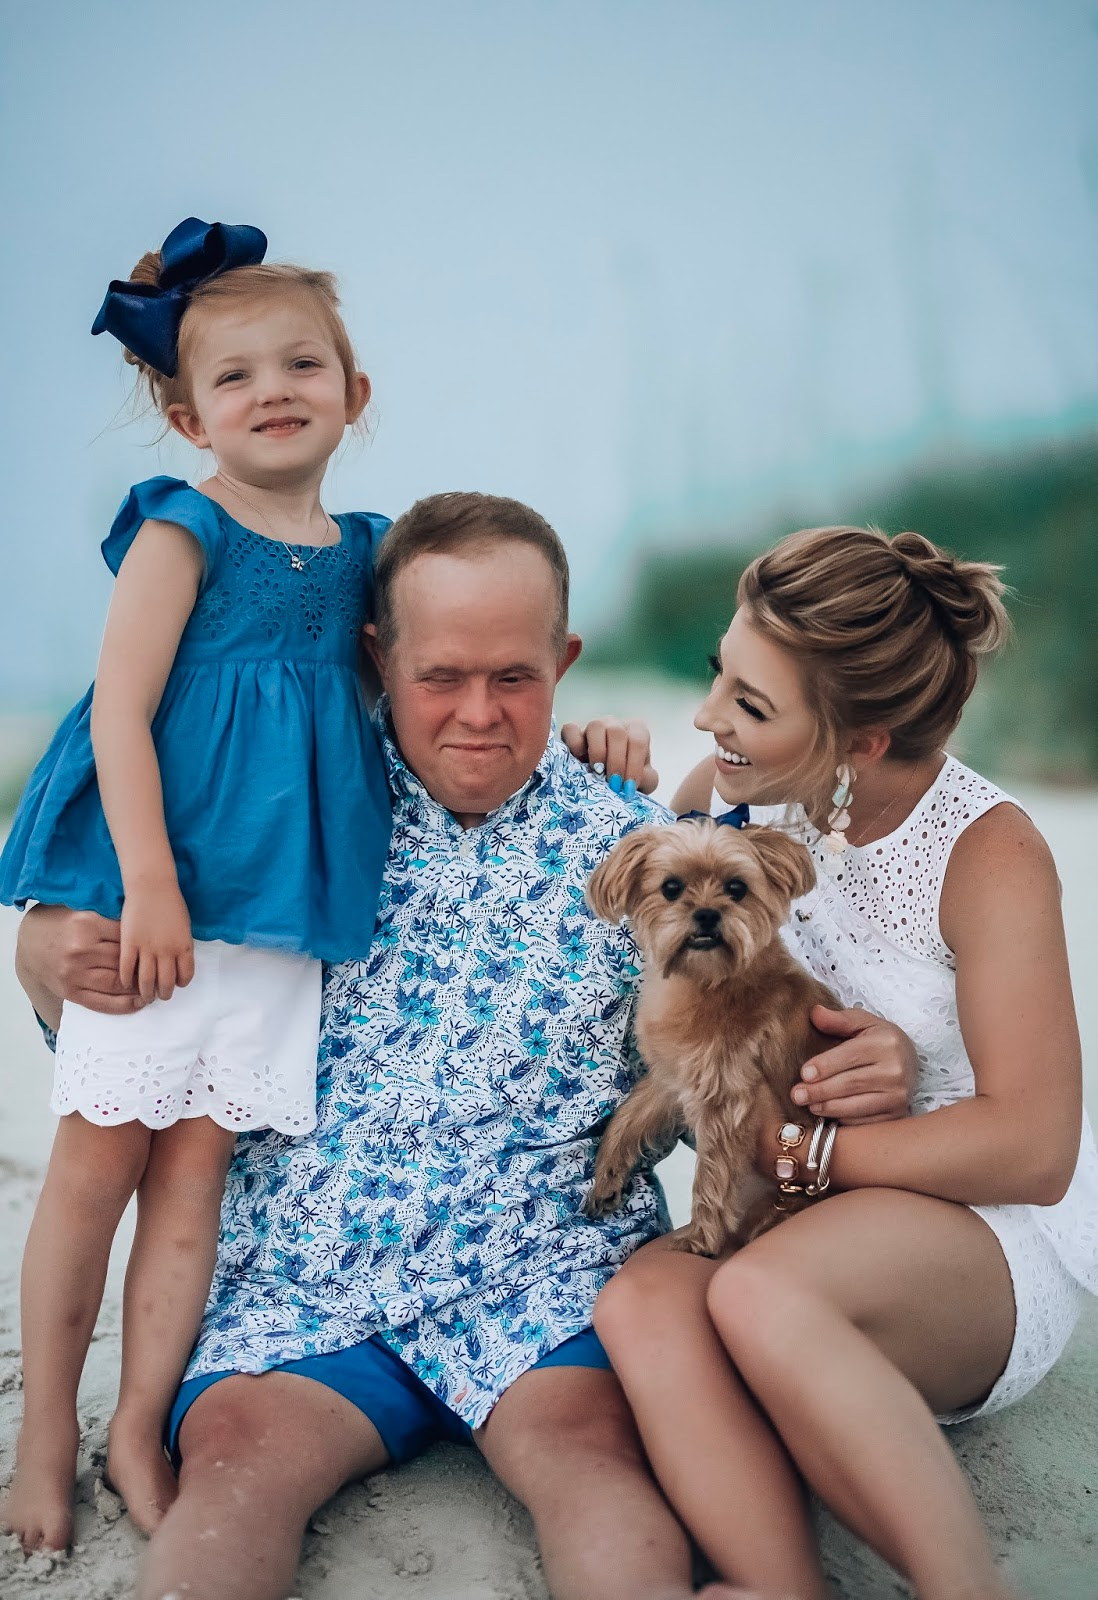 A New Post With Uncle Doug - A story about my Uncle who has Down Syndrome in New Smyrna Beach, FL. - Something Delightful Blog